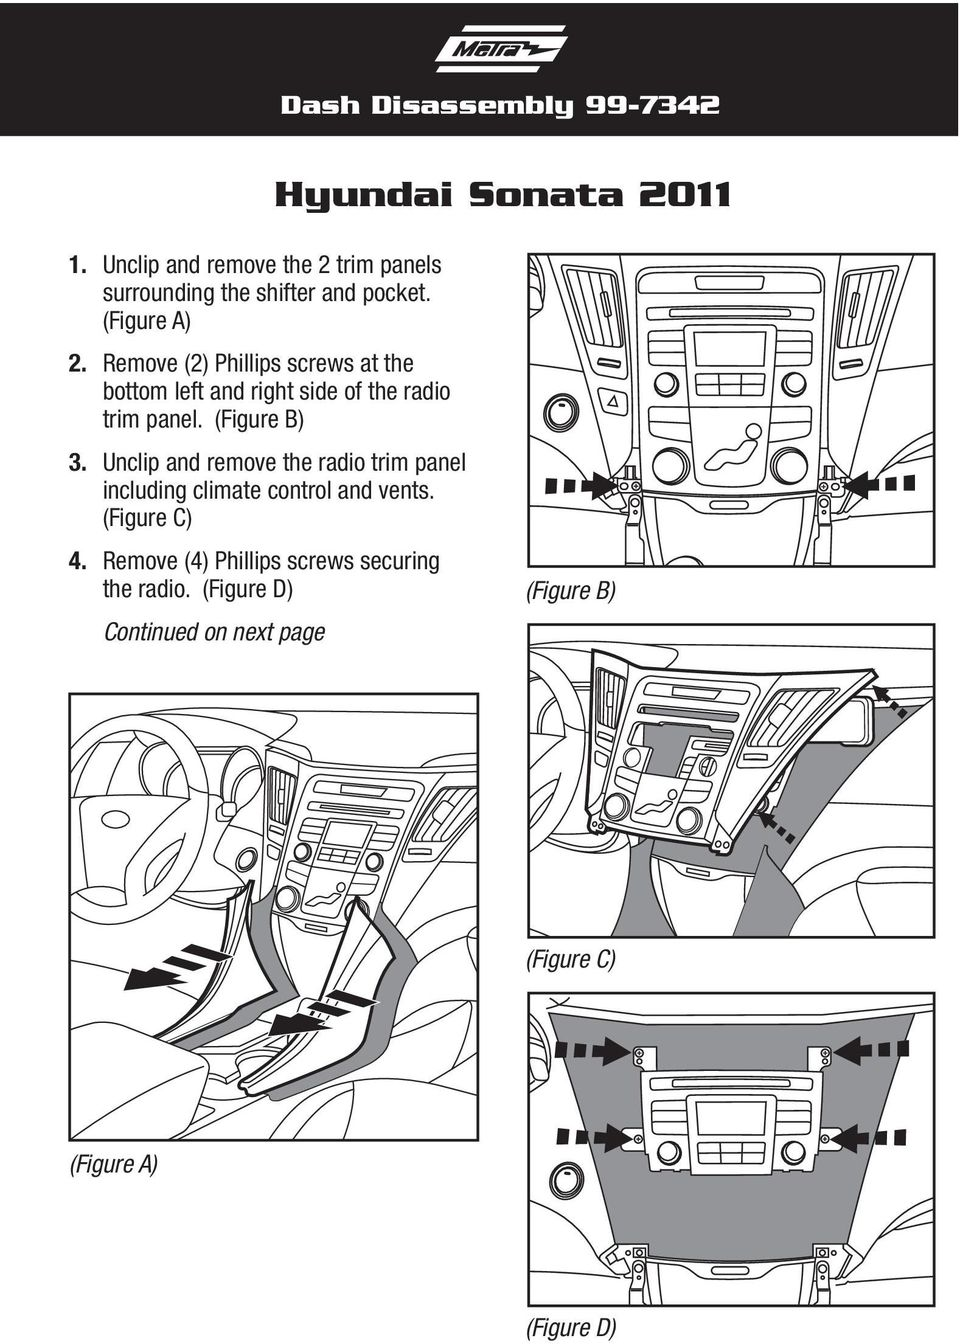 Remove (2) Phillips screws at the bottom left and right side of the radio trim panel. (Figure B) 3.